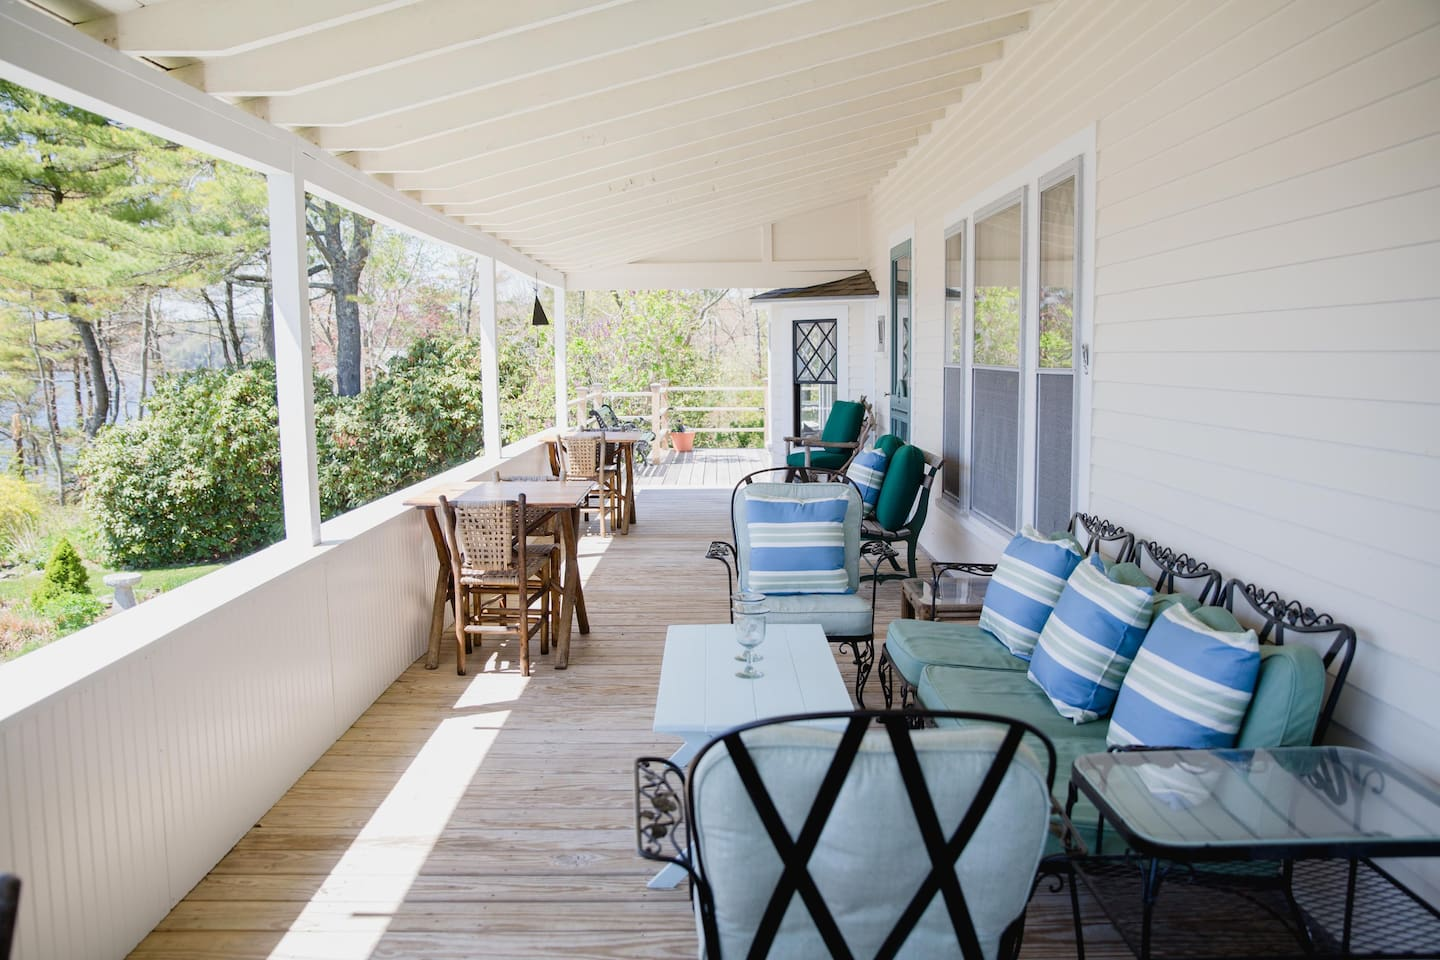 50 Feet long, and twelve feet deep, the front porch offers comfortable seating to enjoy peace and quiet!